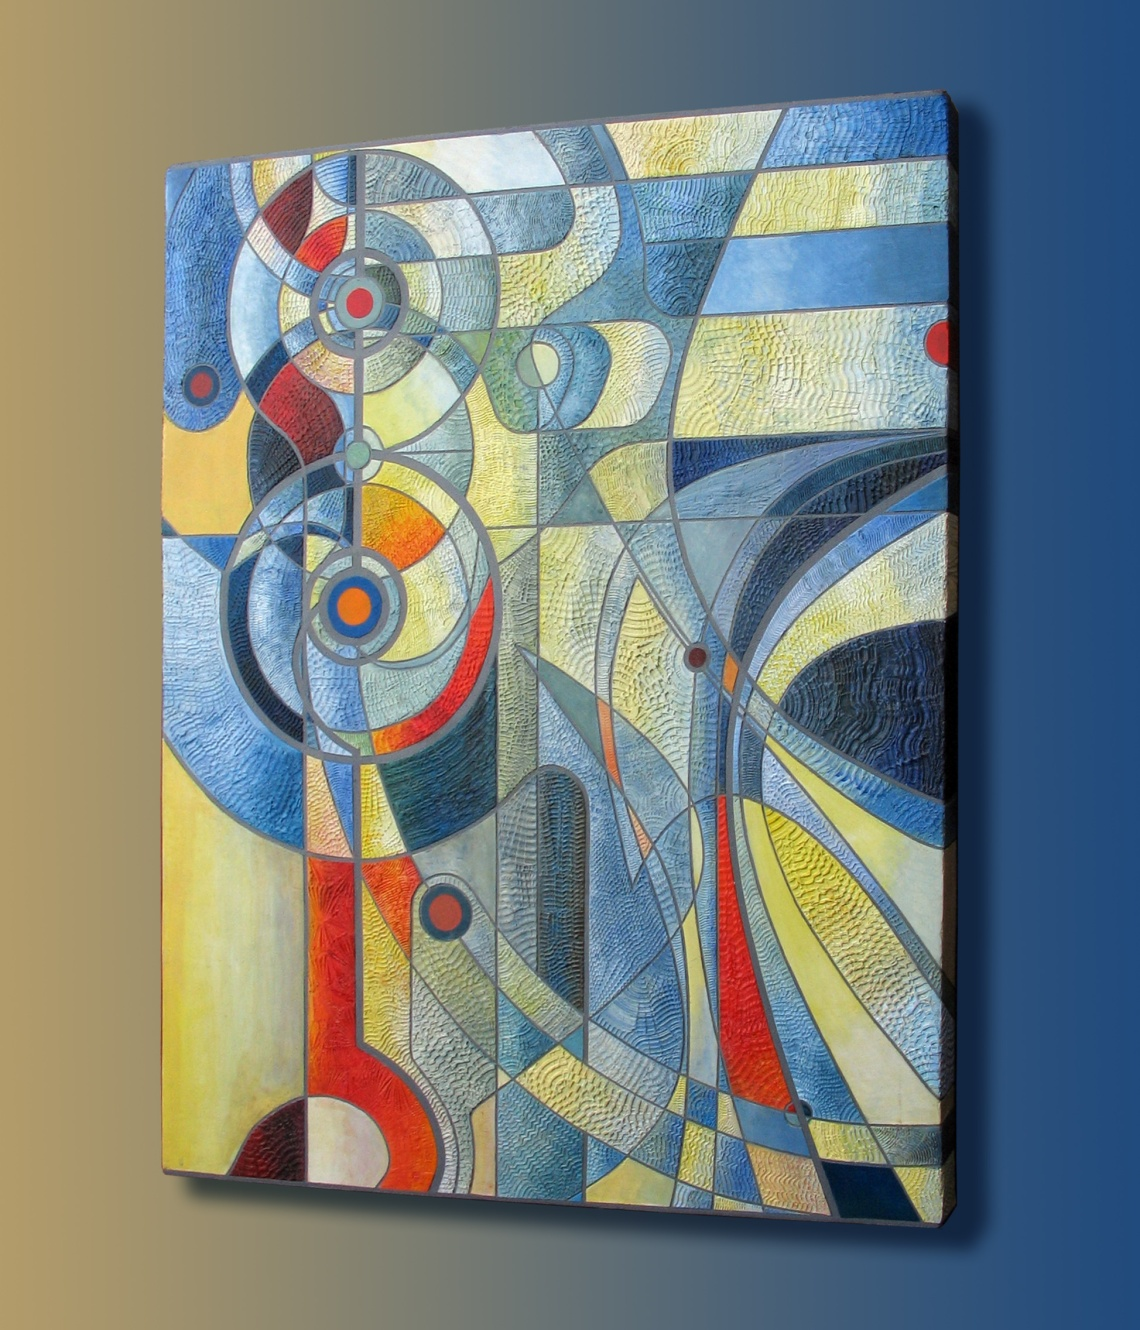 Homage to Giacomo Balla